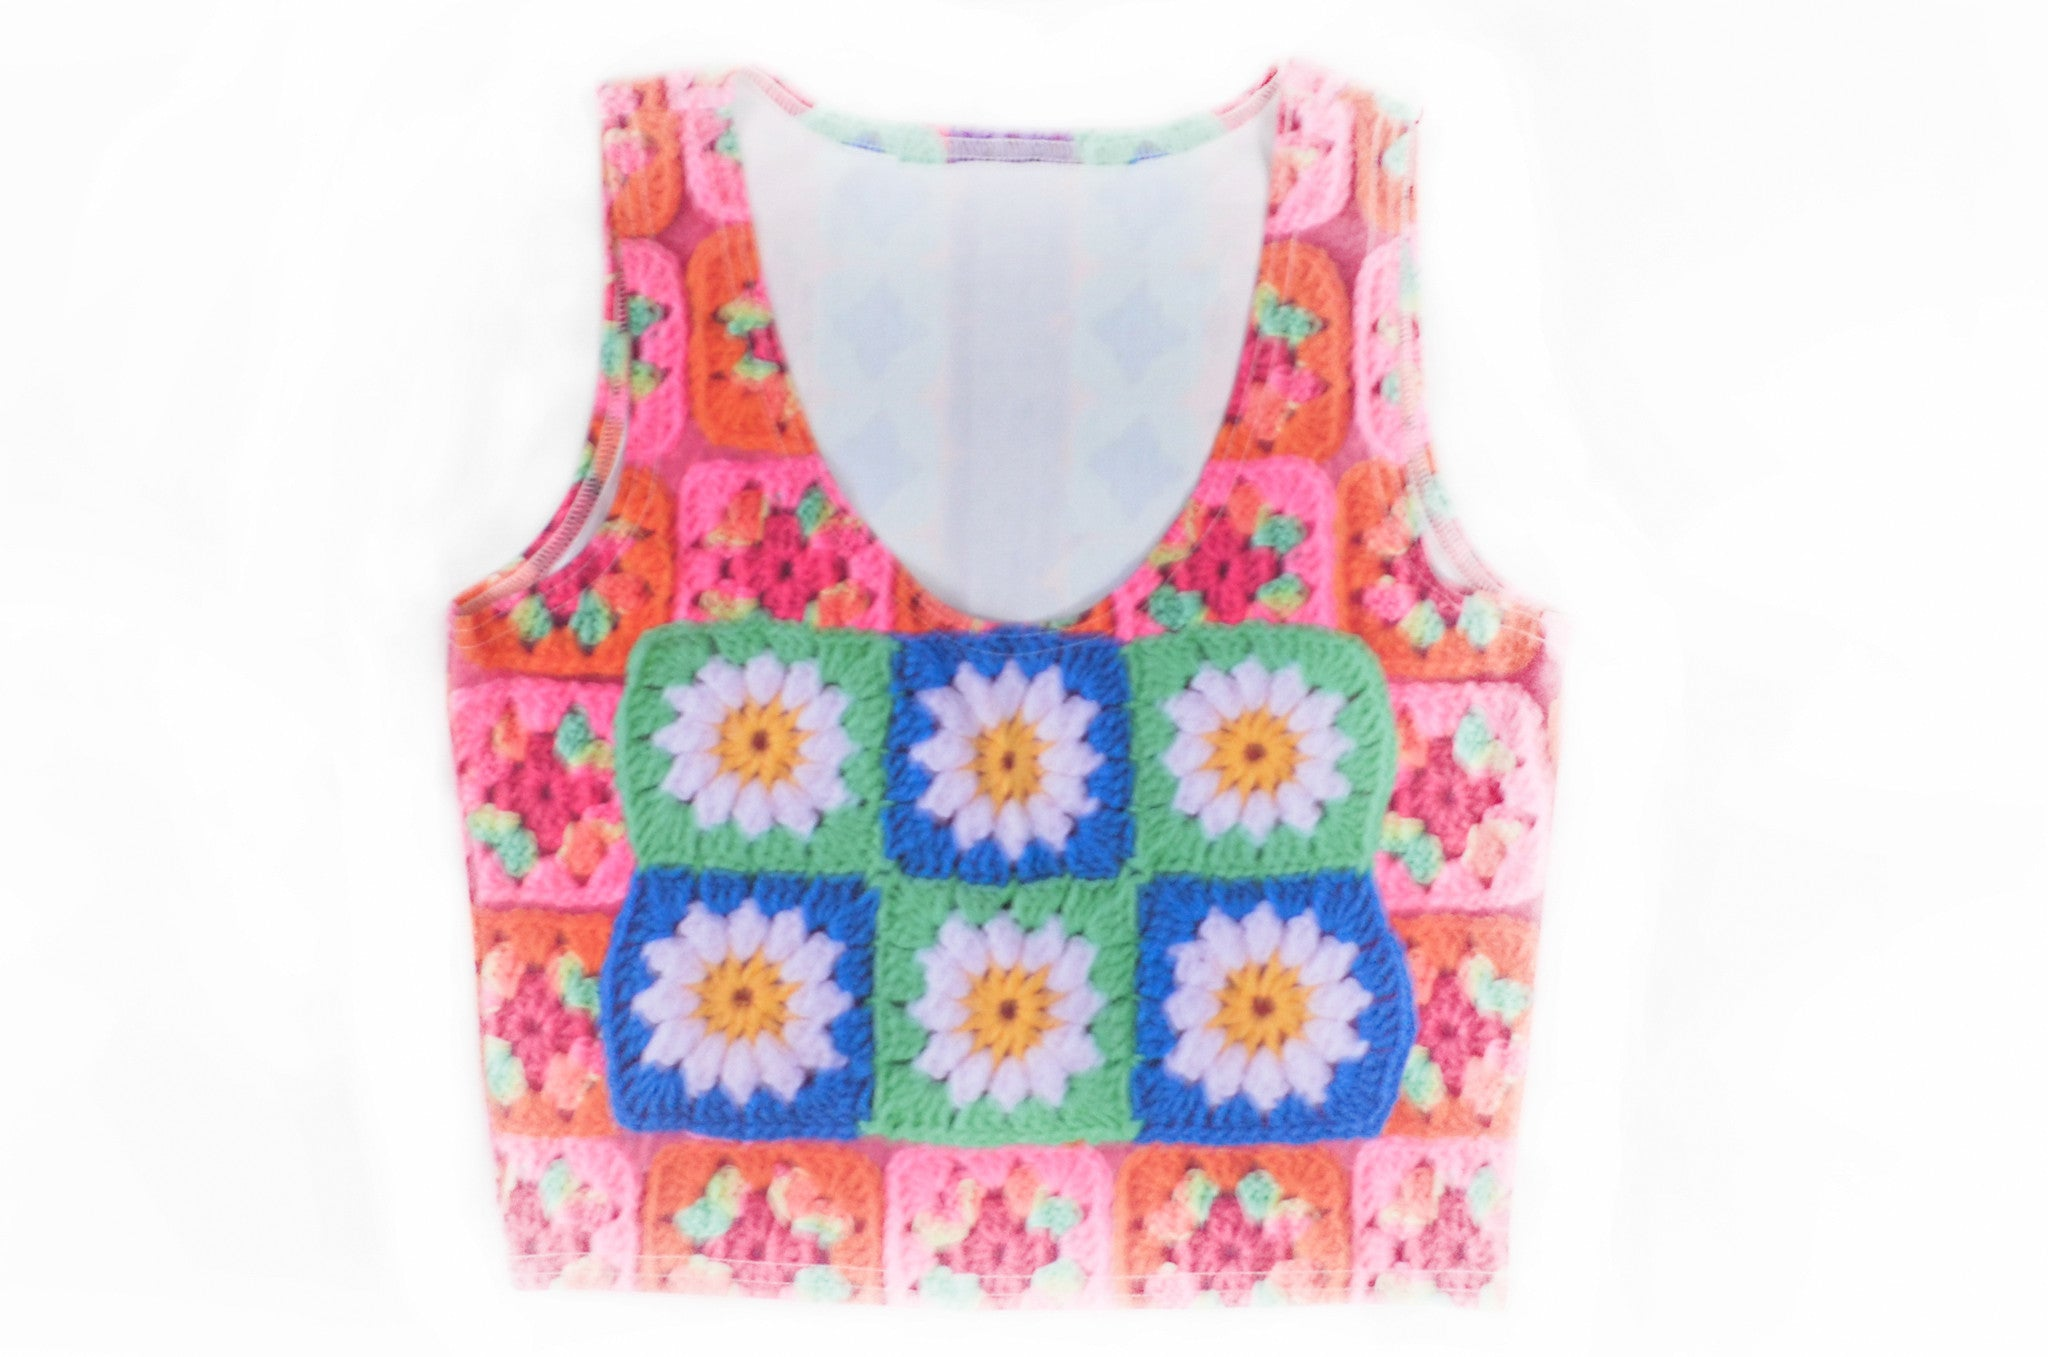 Snapdragon Brand Clothing Granny Square Crochet Print neon crop top cropped sleeveless shirt in style Playa Daisy features a vintage psychedelic boho feel and a rainbow of colors. Made of comfortable spandex. Daisies